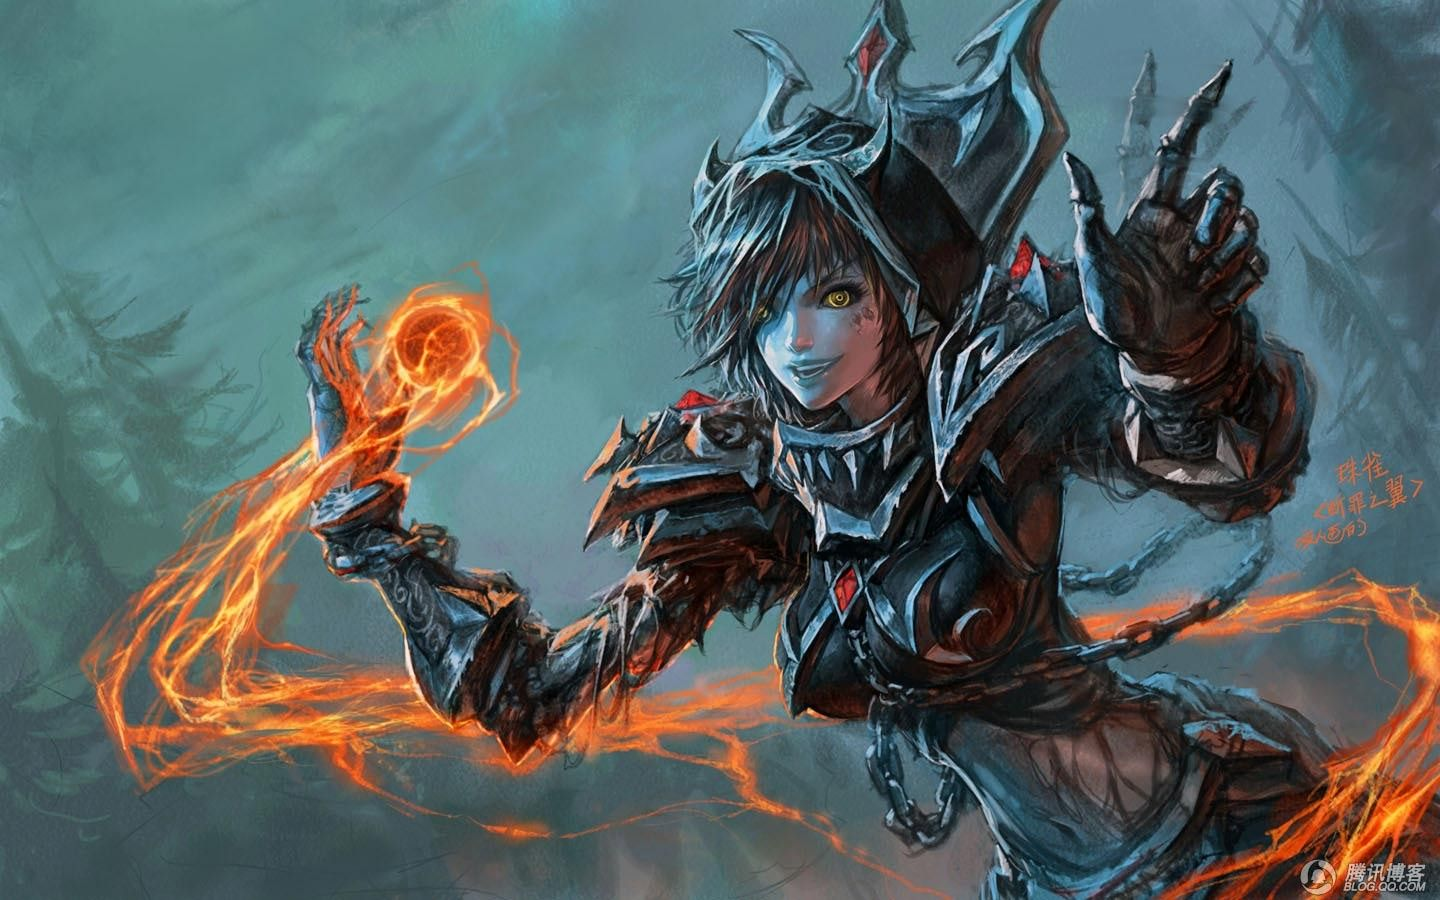 World of Warcraft Yaorenwo armor artwork fantasy art